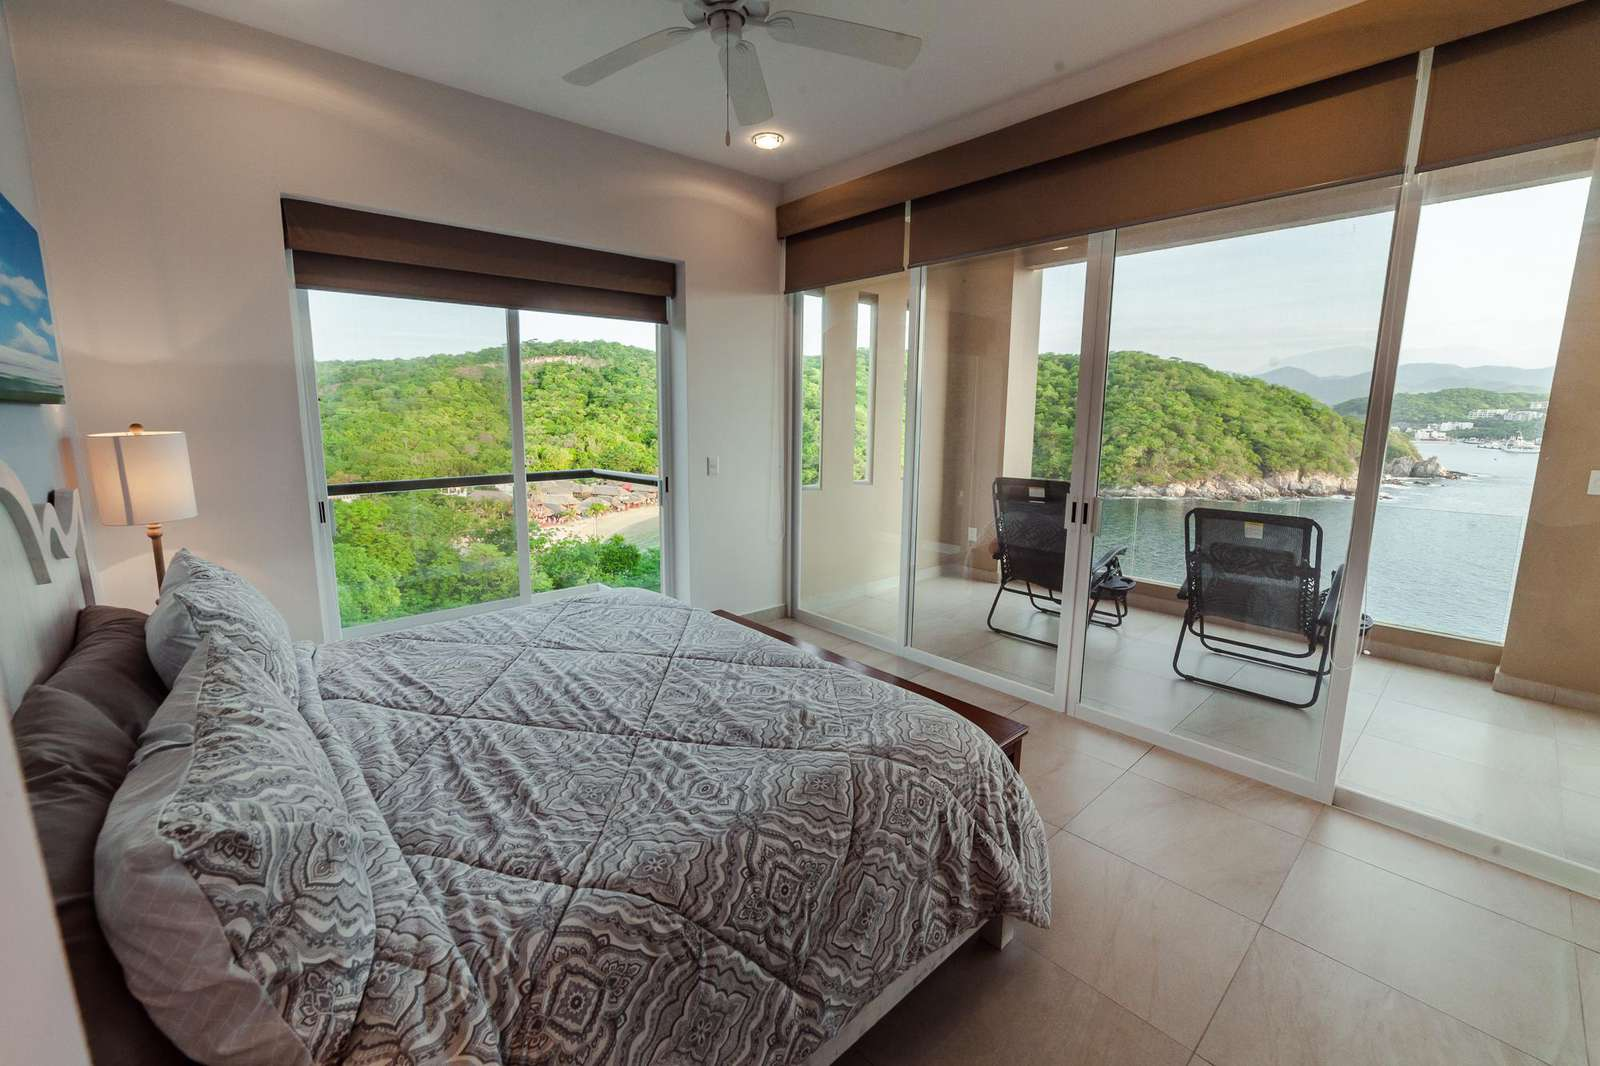 Terrace access from the master bedroom with dramatic ocean views